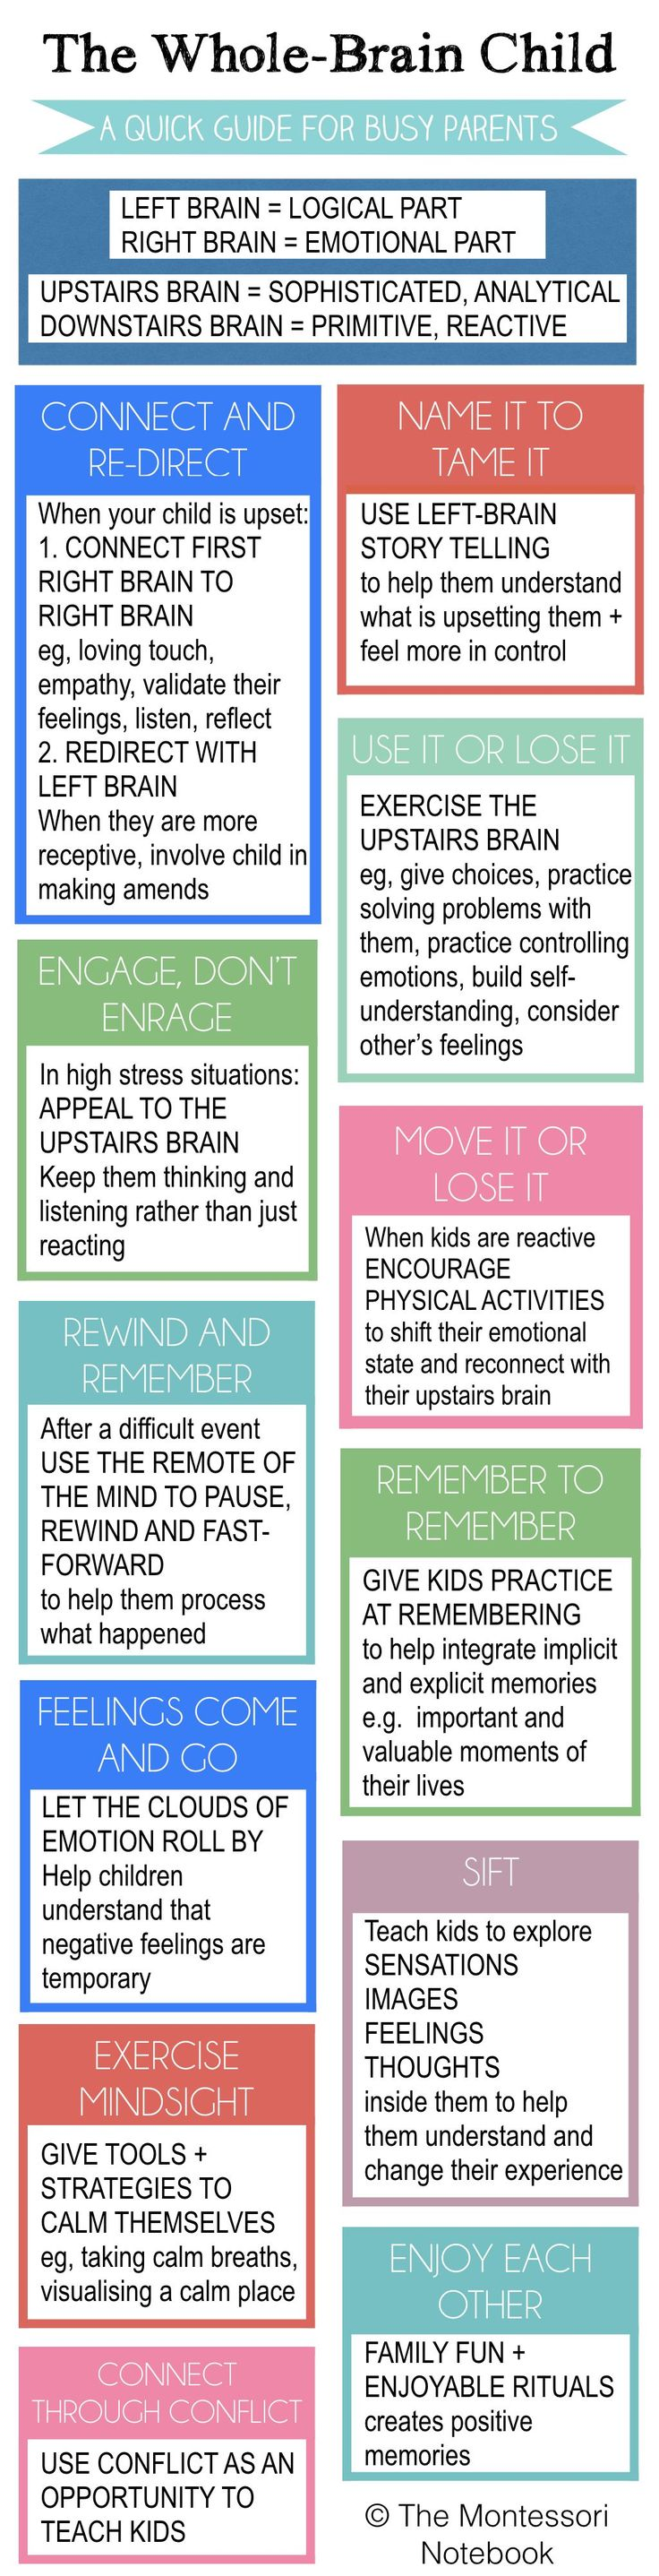 Montessori Infographic Summary of The Whole-Brain Child - an essential infographic to help you put into practice the 12 strategies from Dan Siegel's best seller The Whole-Brain Child